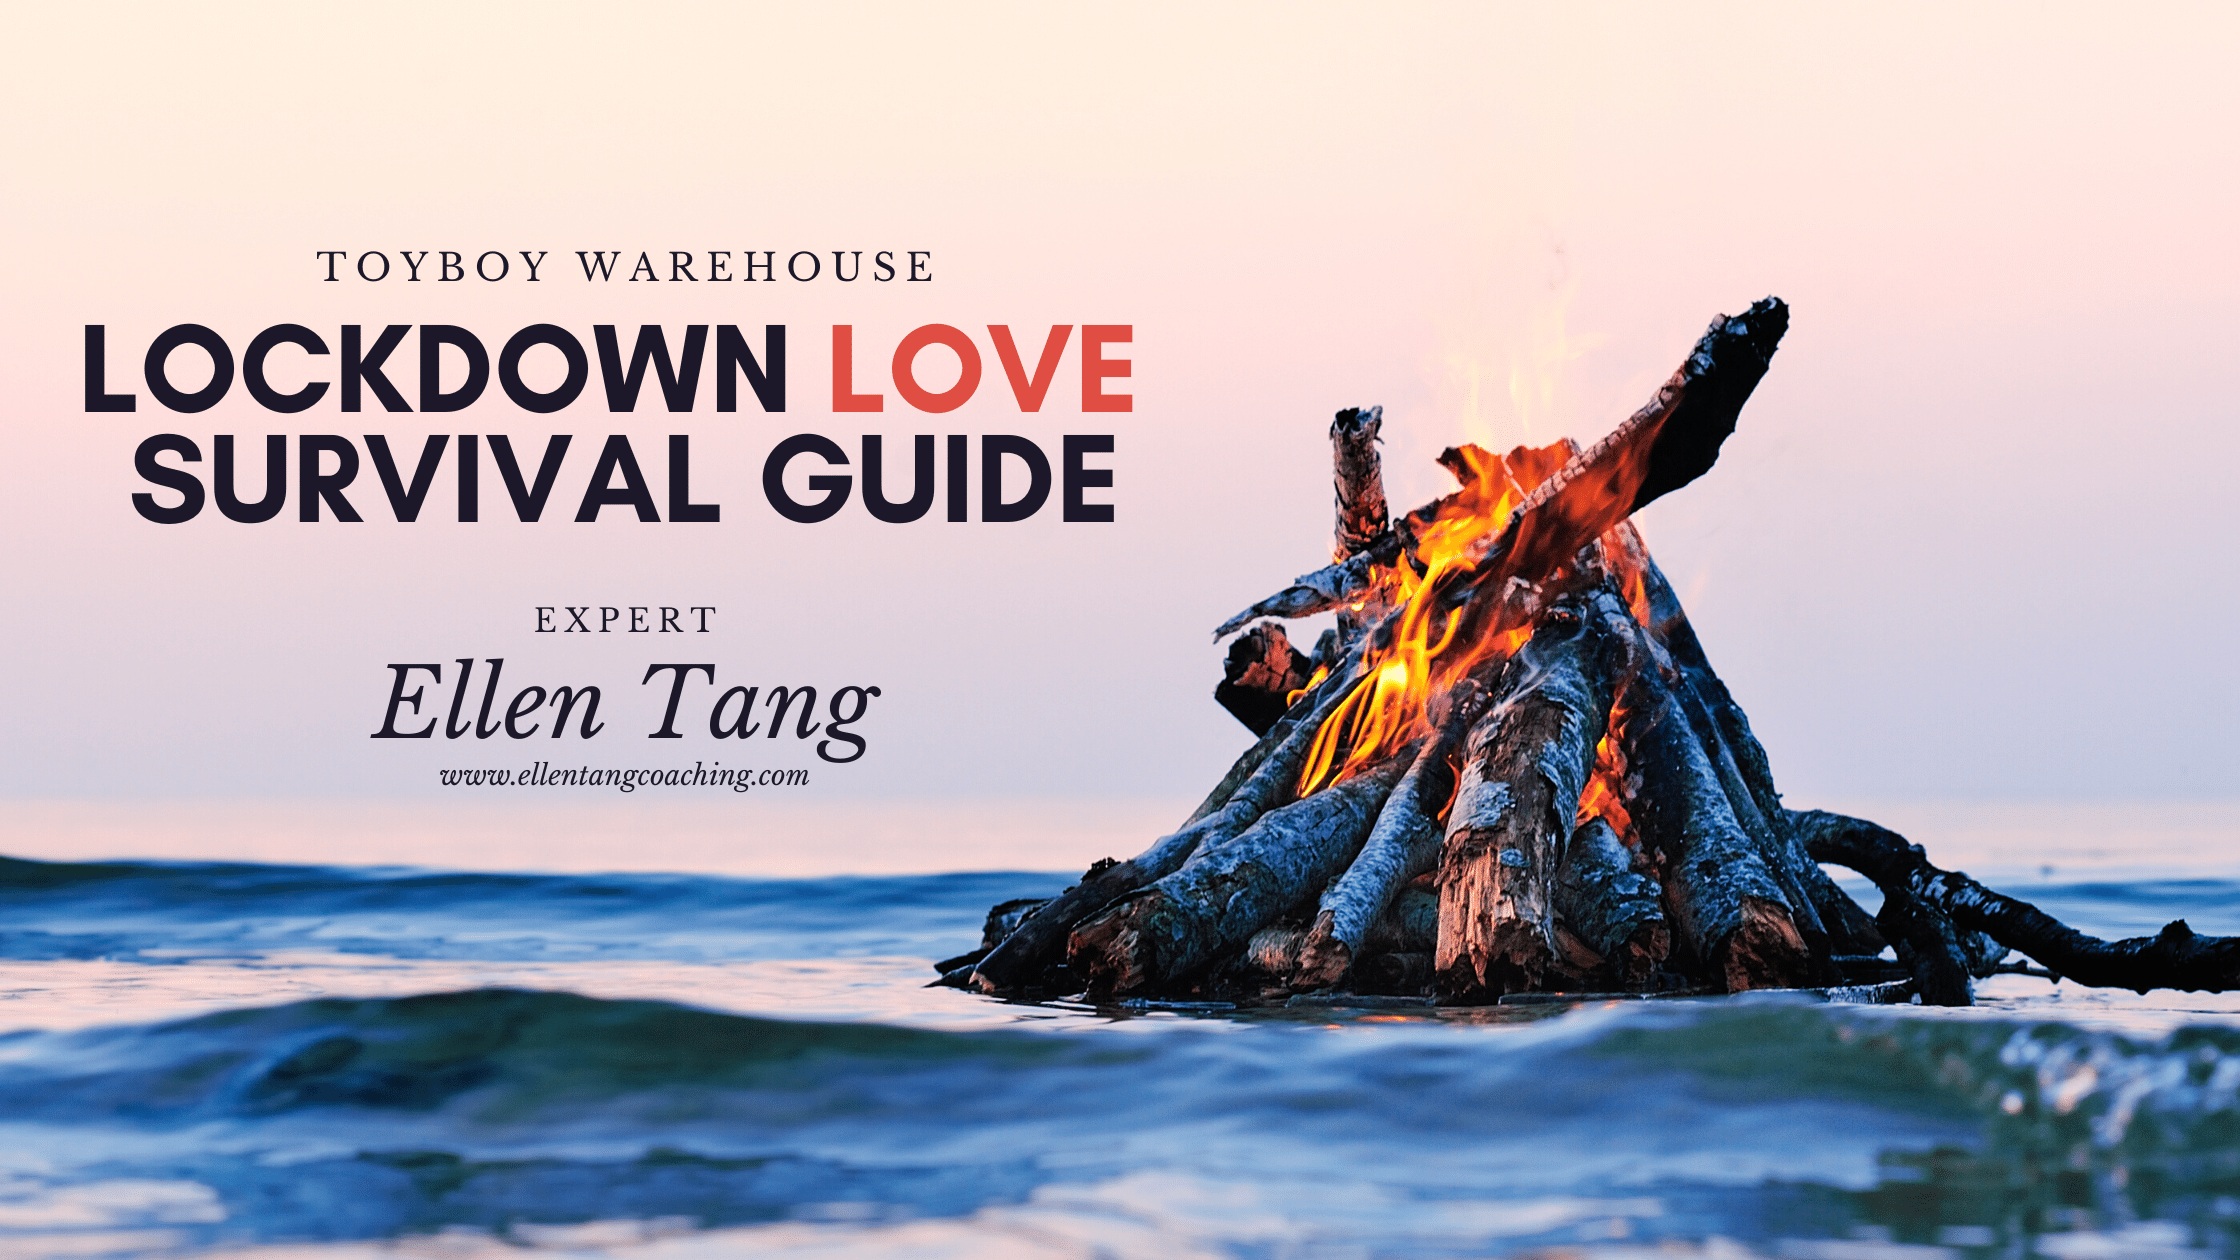 Lockdown Love Survival Guide – Expert: Ellen Tang